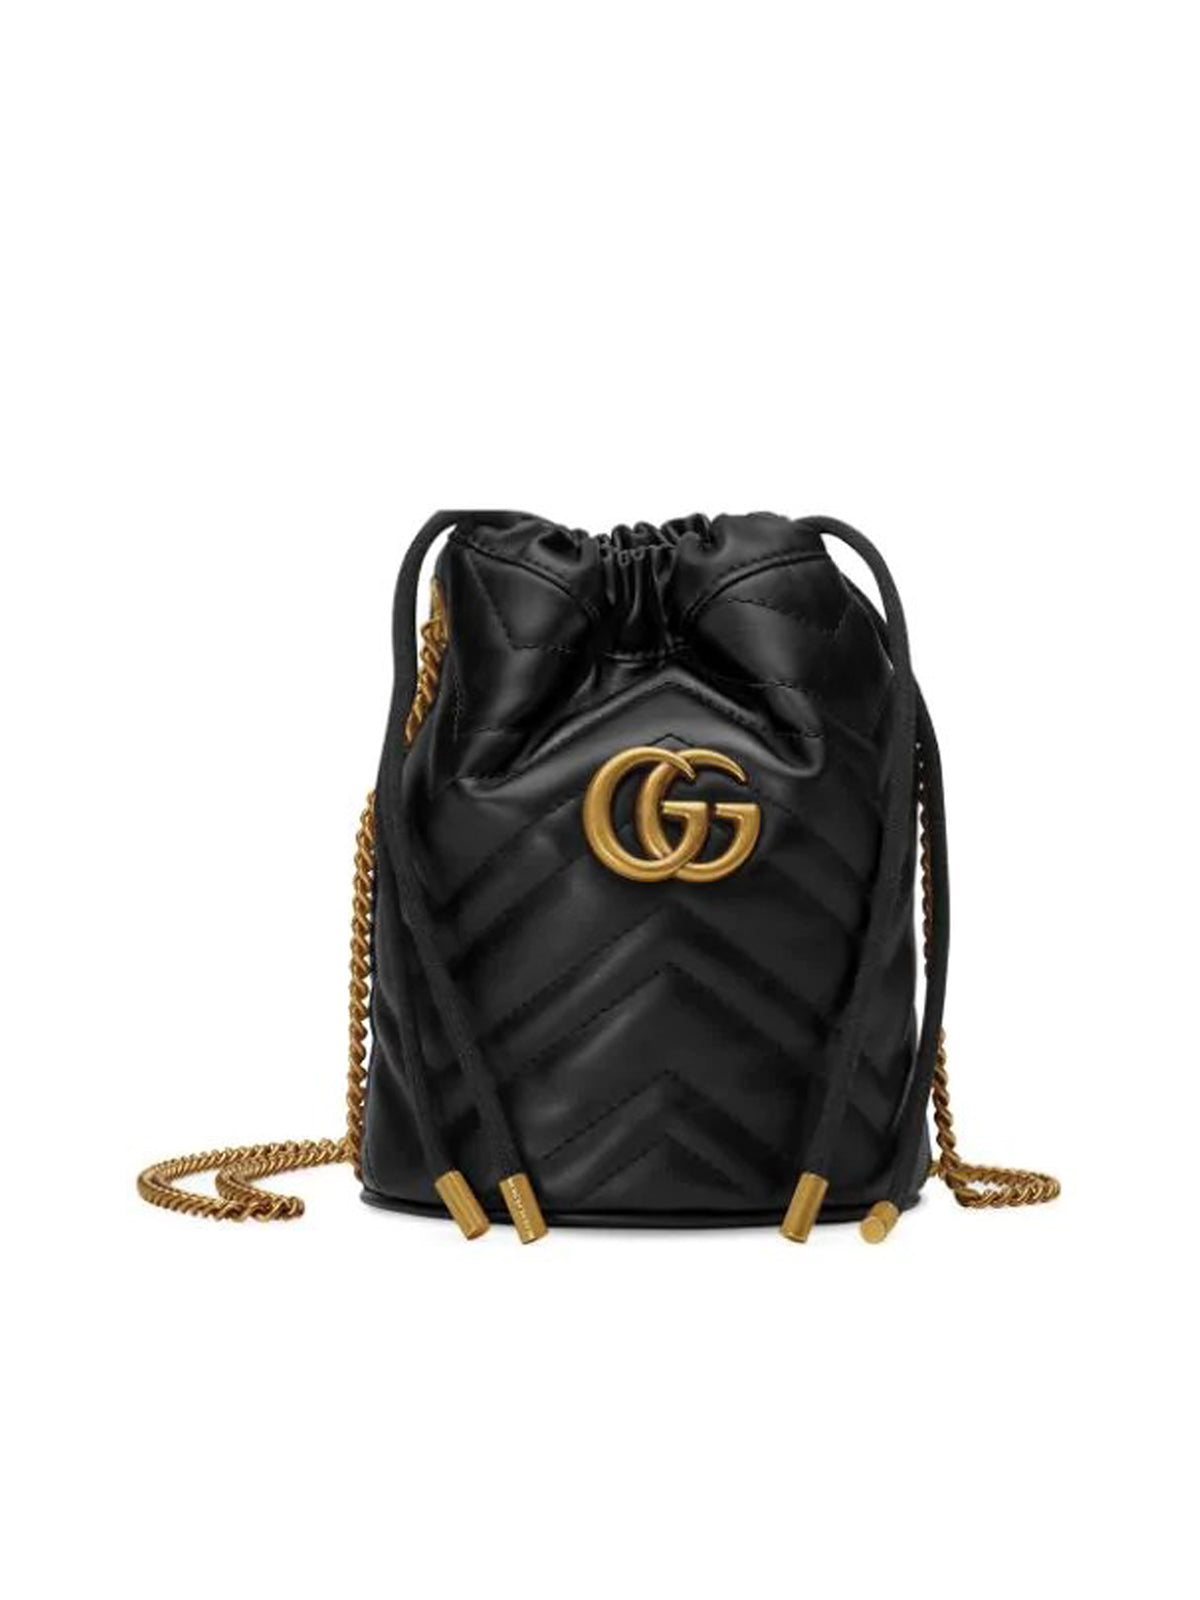 GG MARMONT SMALL BUCKET BAG